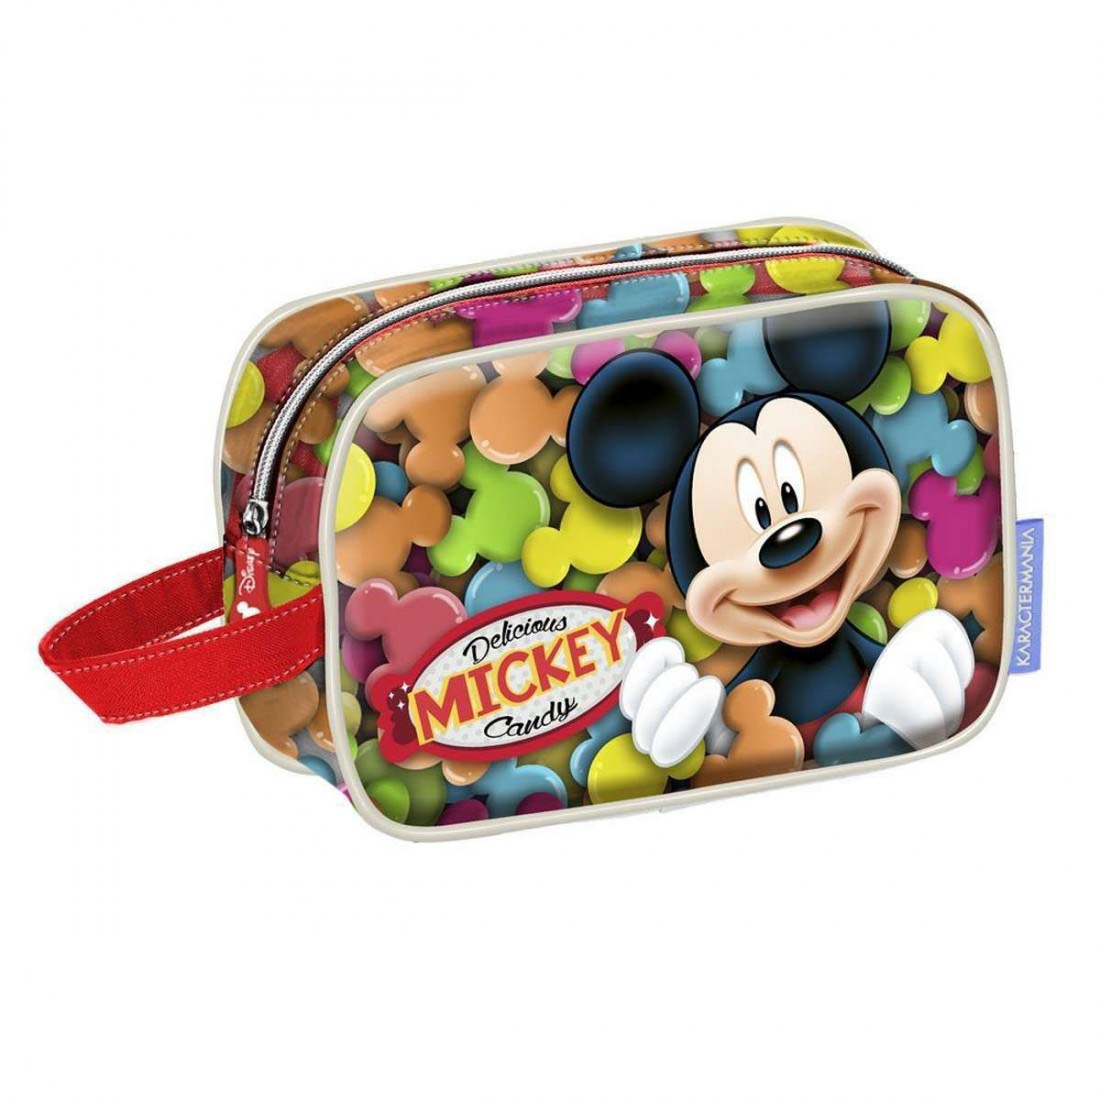 Neceser Mickey Mouse Delicious